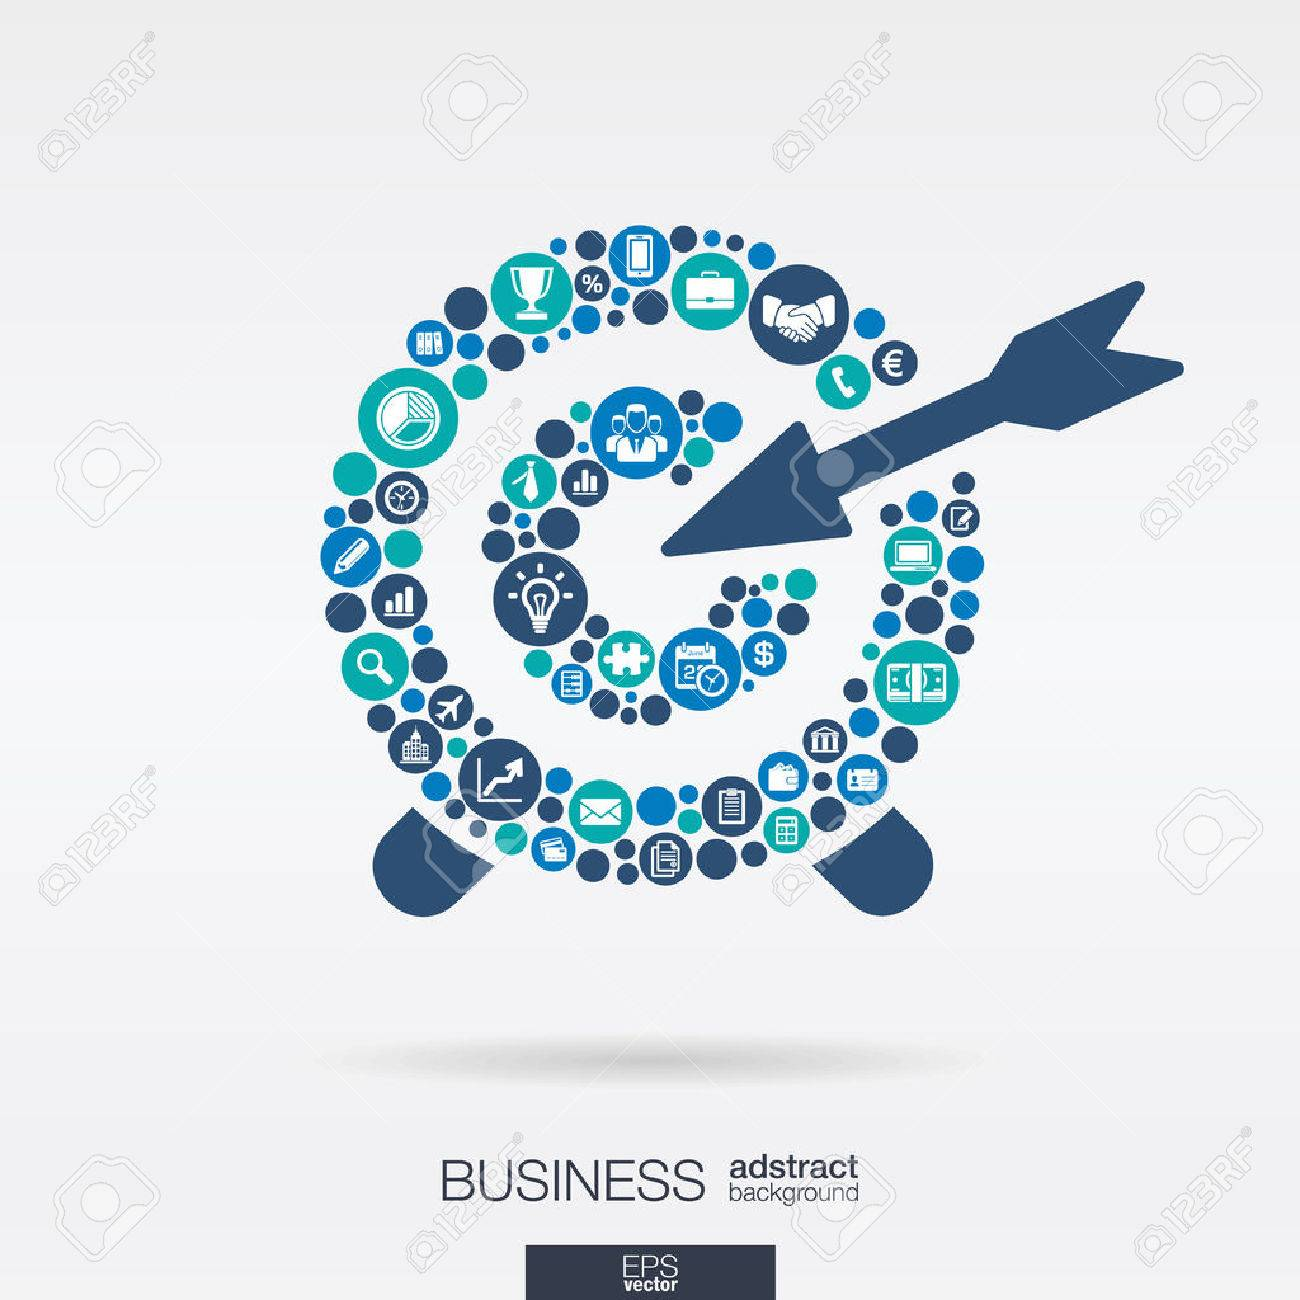 Color circles, flat icons in a target shape: business, marketing research, strategy, mission, analytics concepts. Abstract background with connected objects. Vector interactive illustration. - 43380020